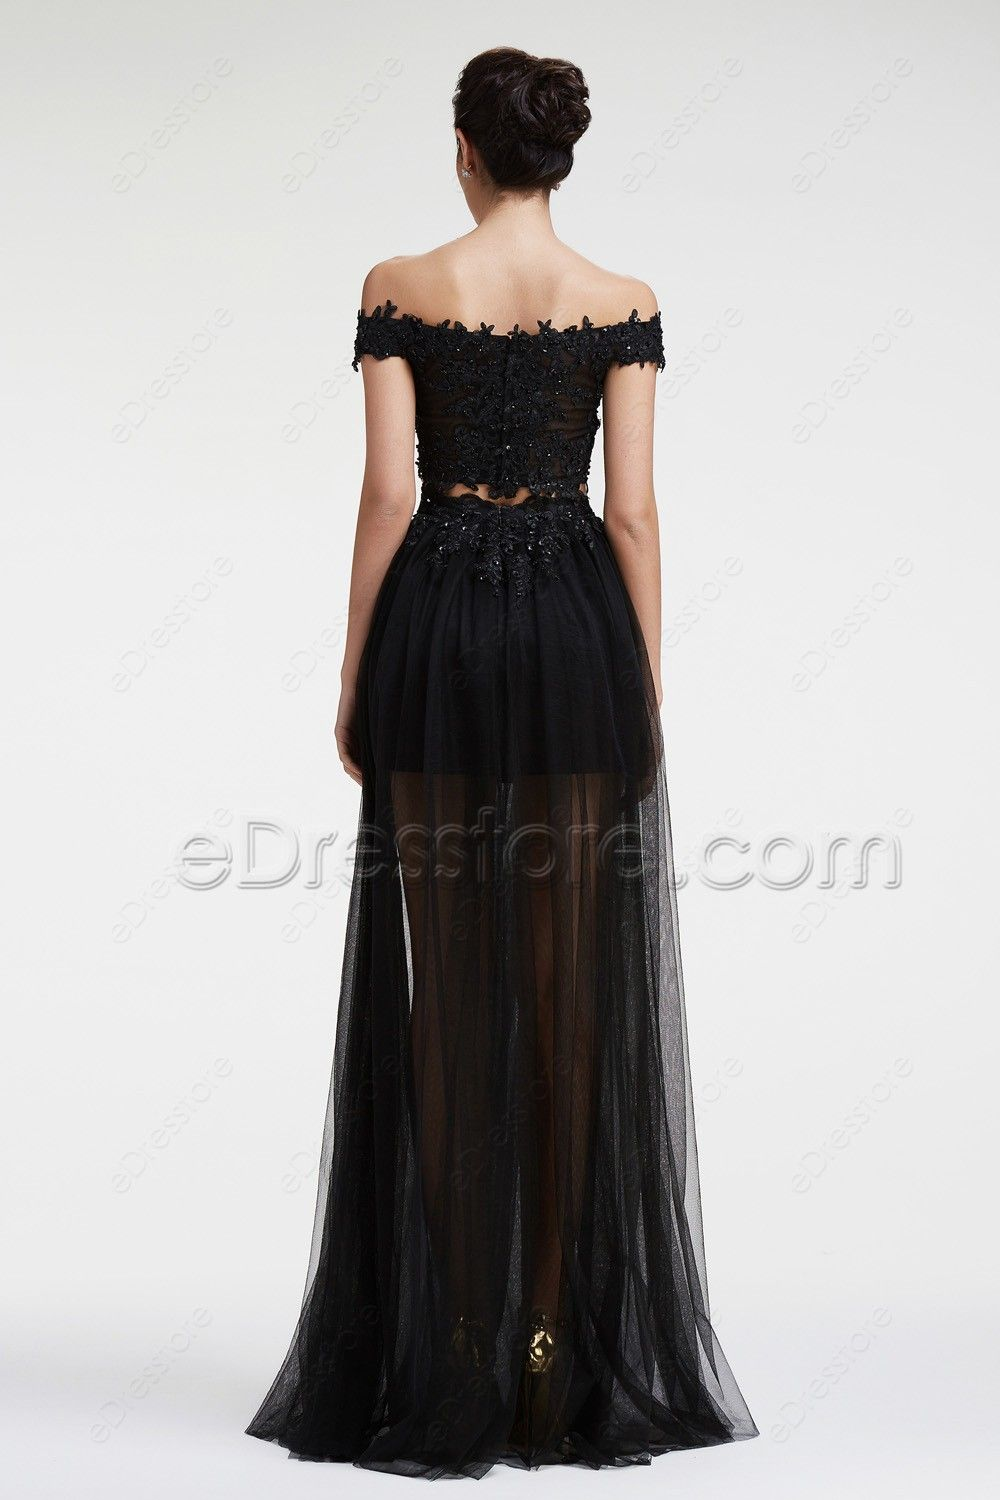 Black lace beaded two piece prom dresses long summer bitches